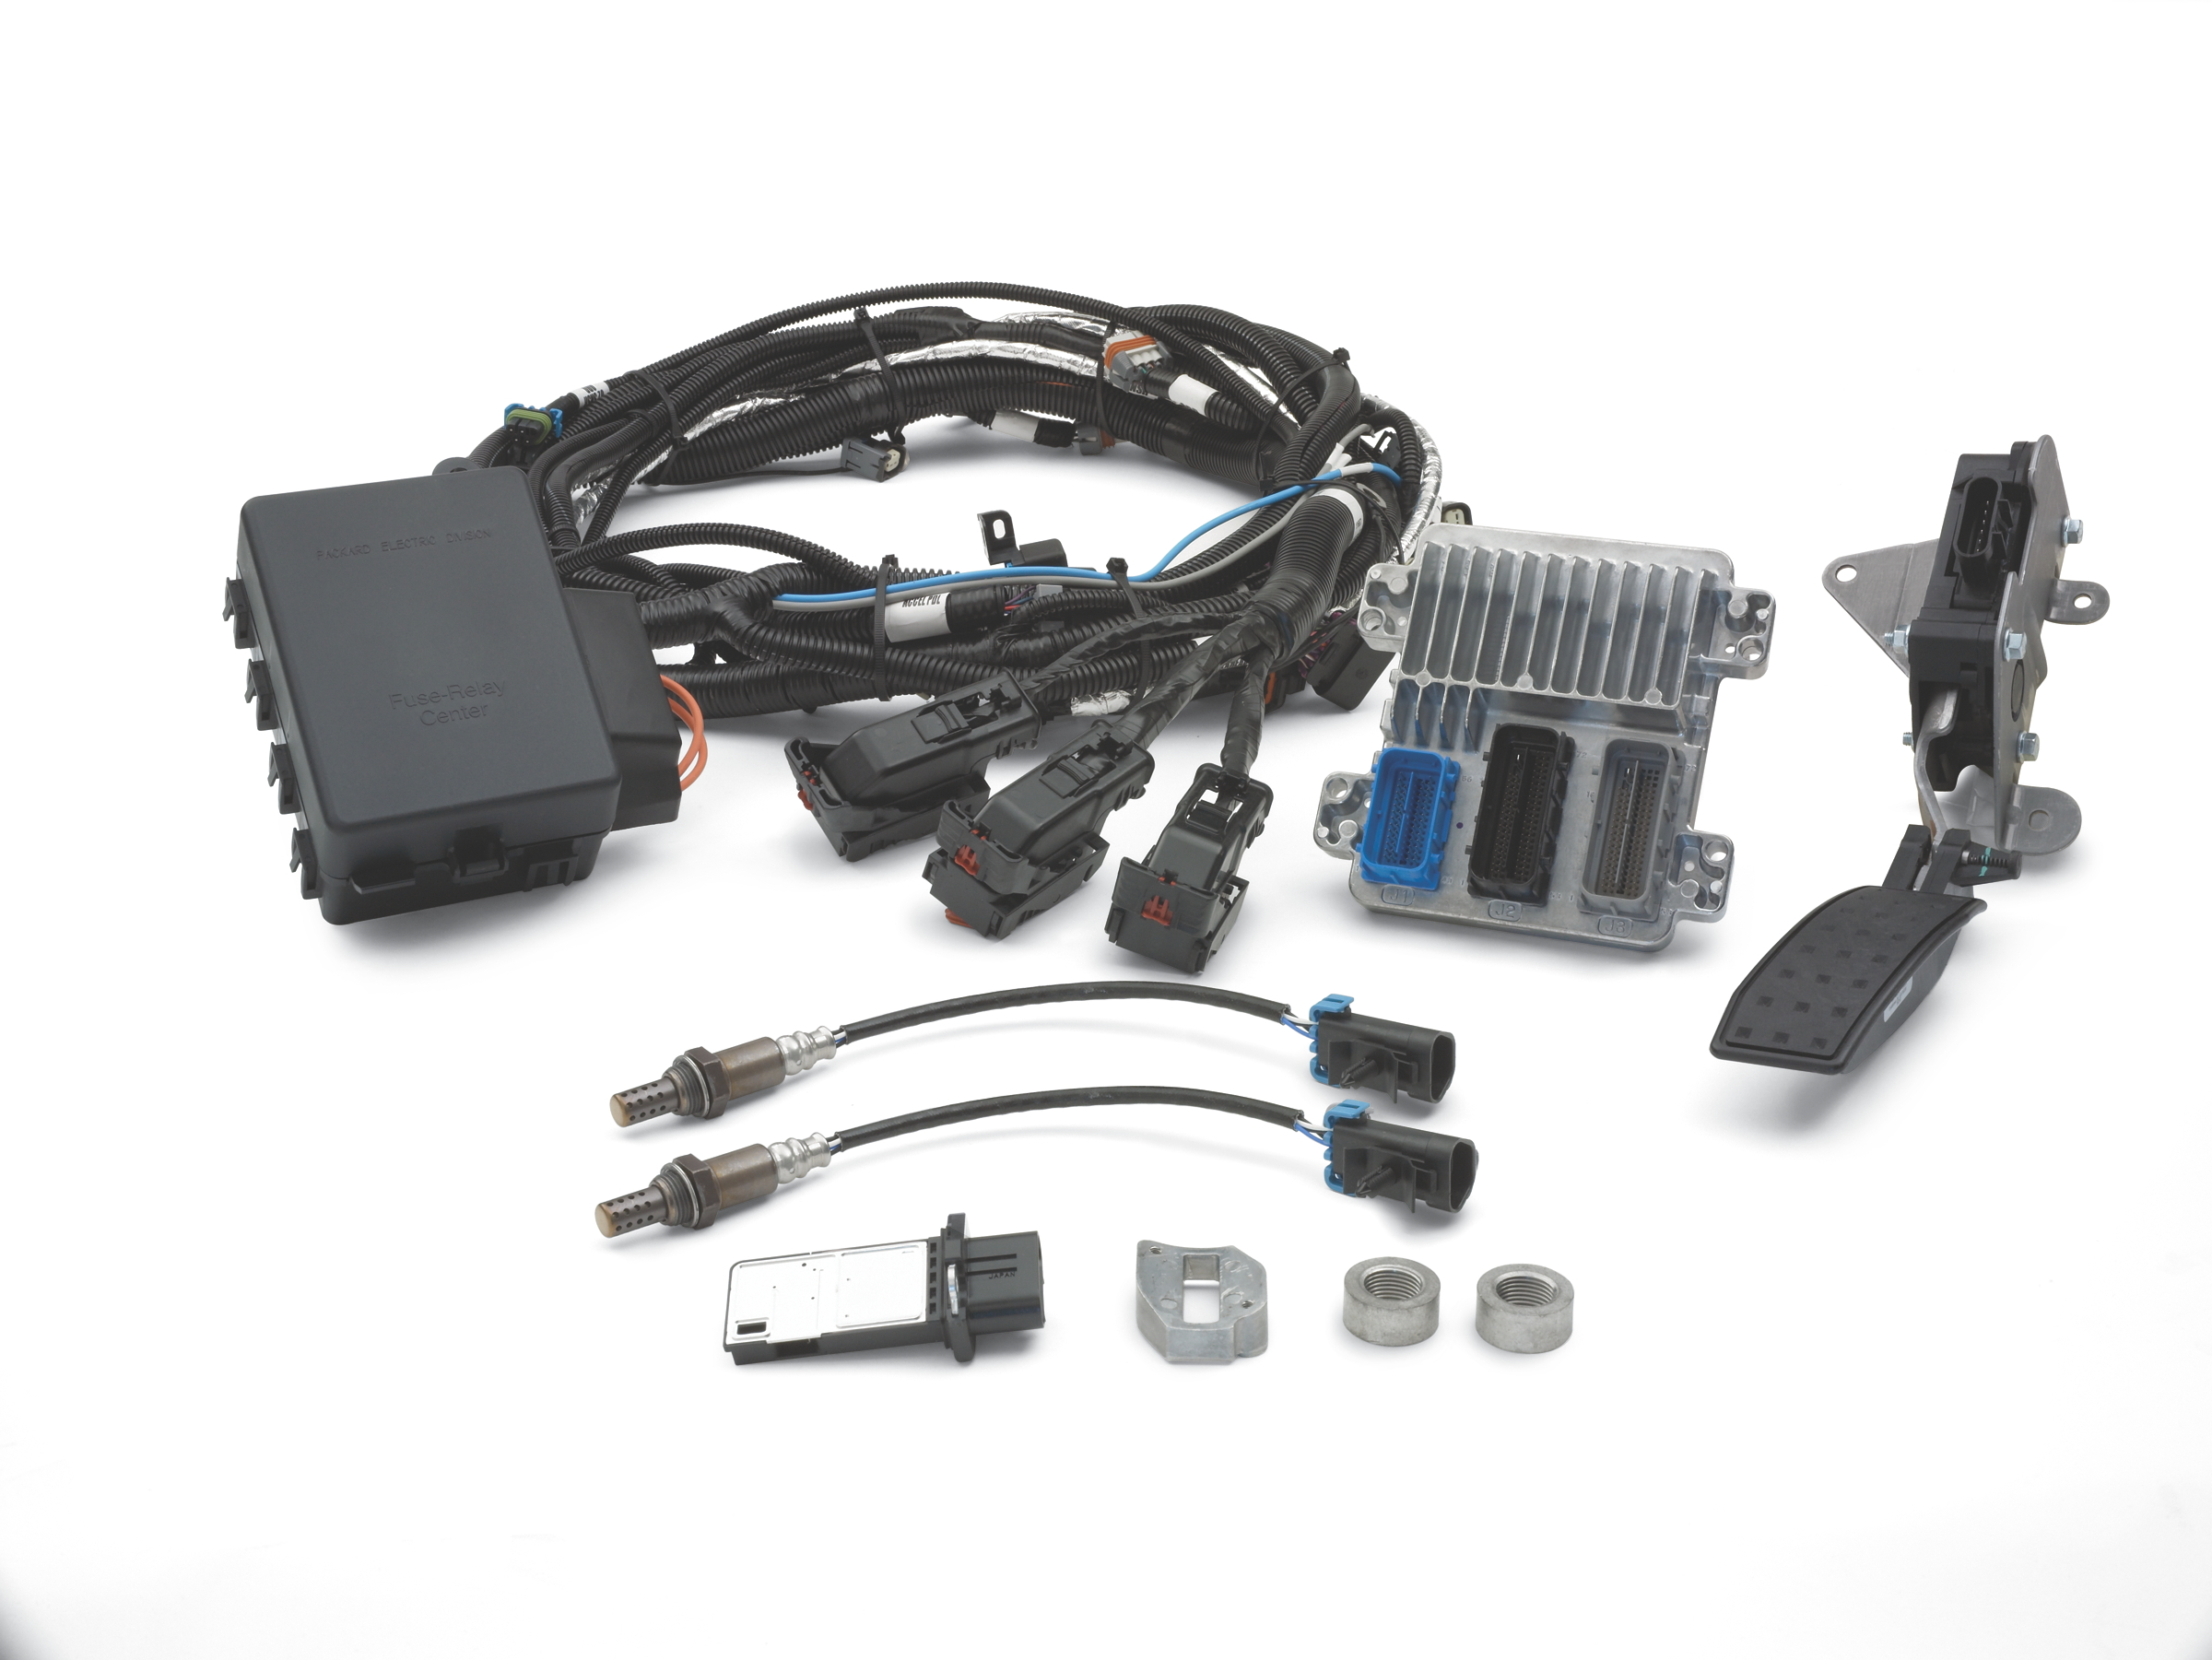 2011 Chevrolet PerfParts 003 chevrolet performance offers retrofit controller kit for 5 3l engines